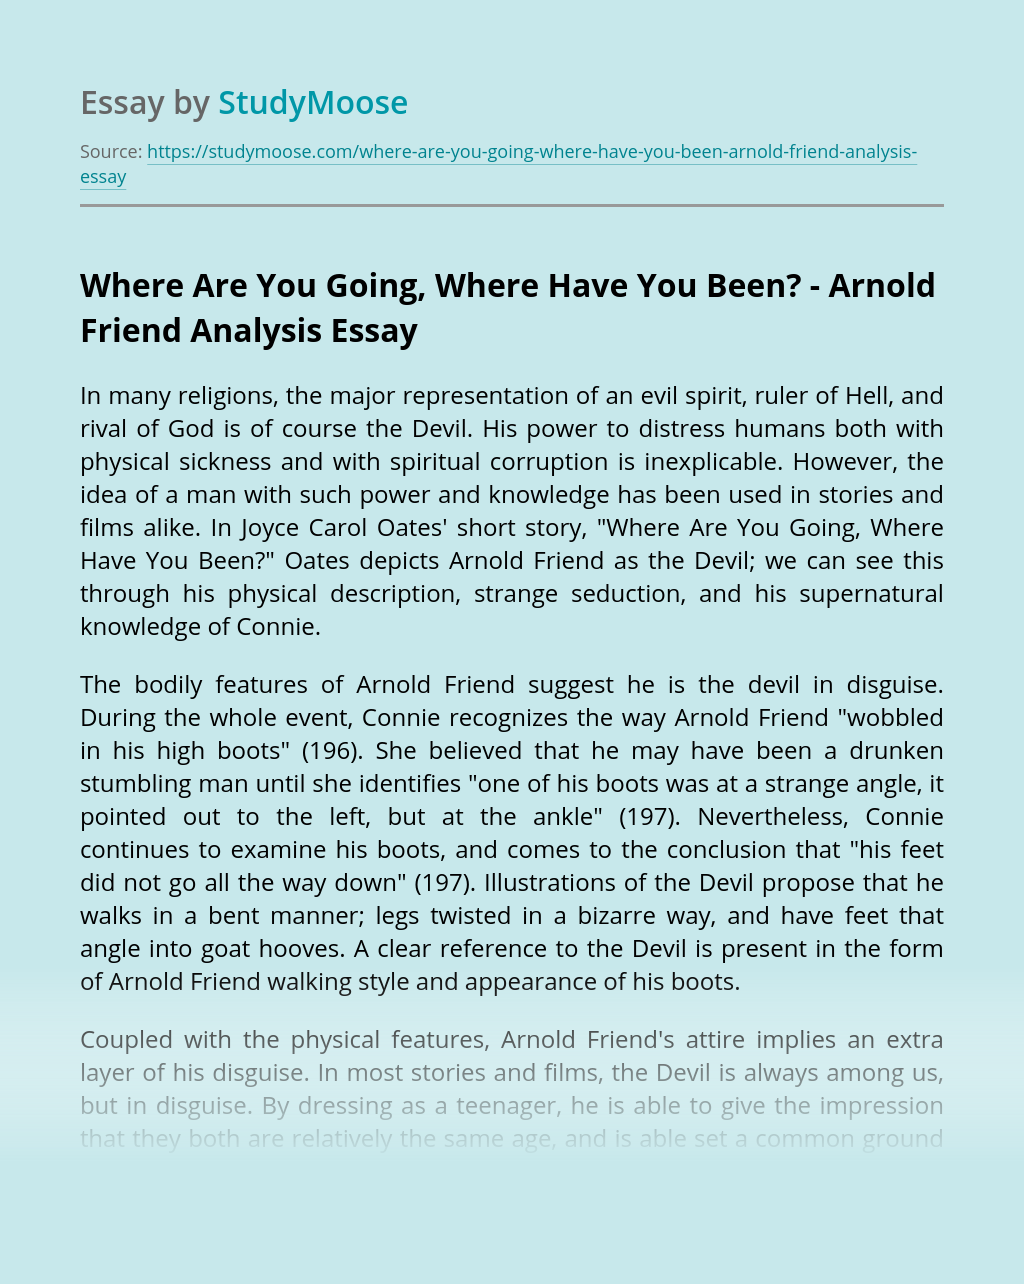 Where Are You Going, Where Have You Been? - Arnold Friend Analysis